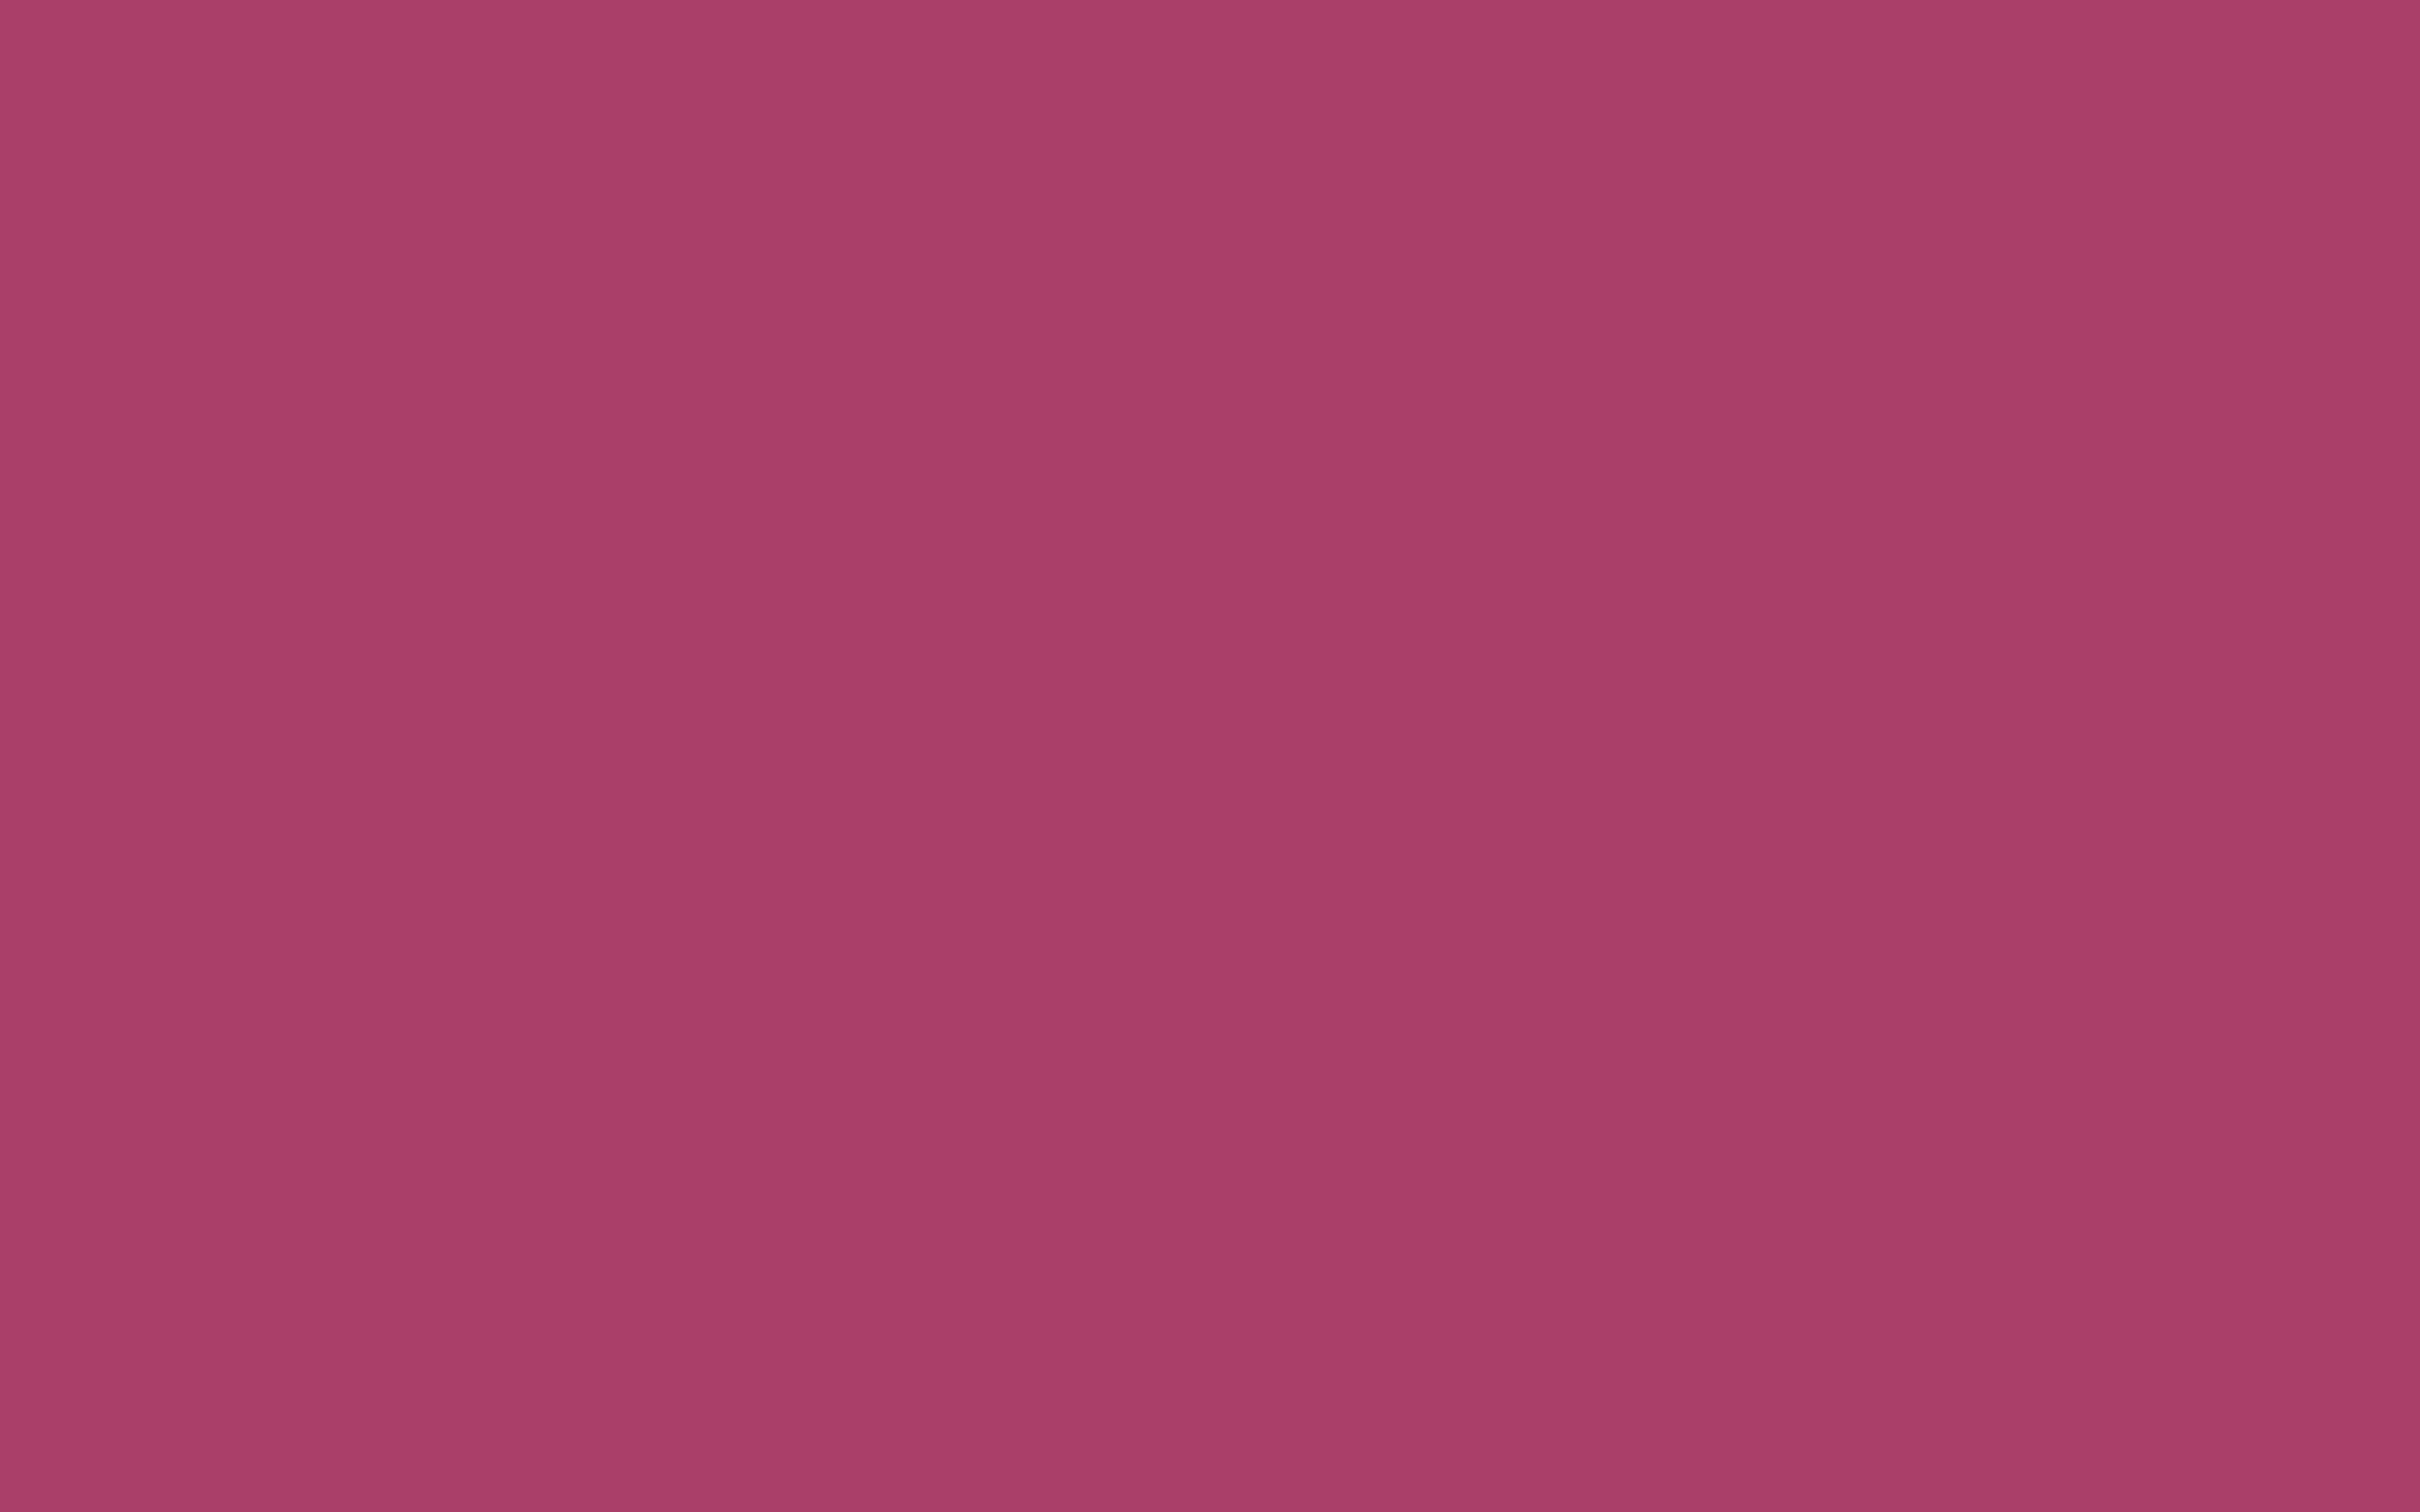 2560x1600 Medium Ruby Solid Color Background